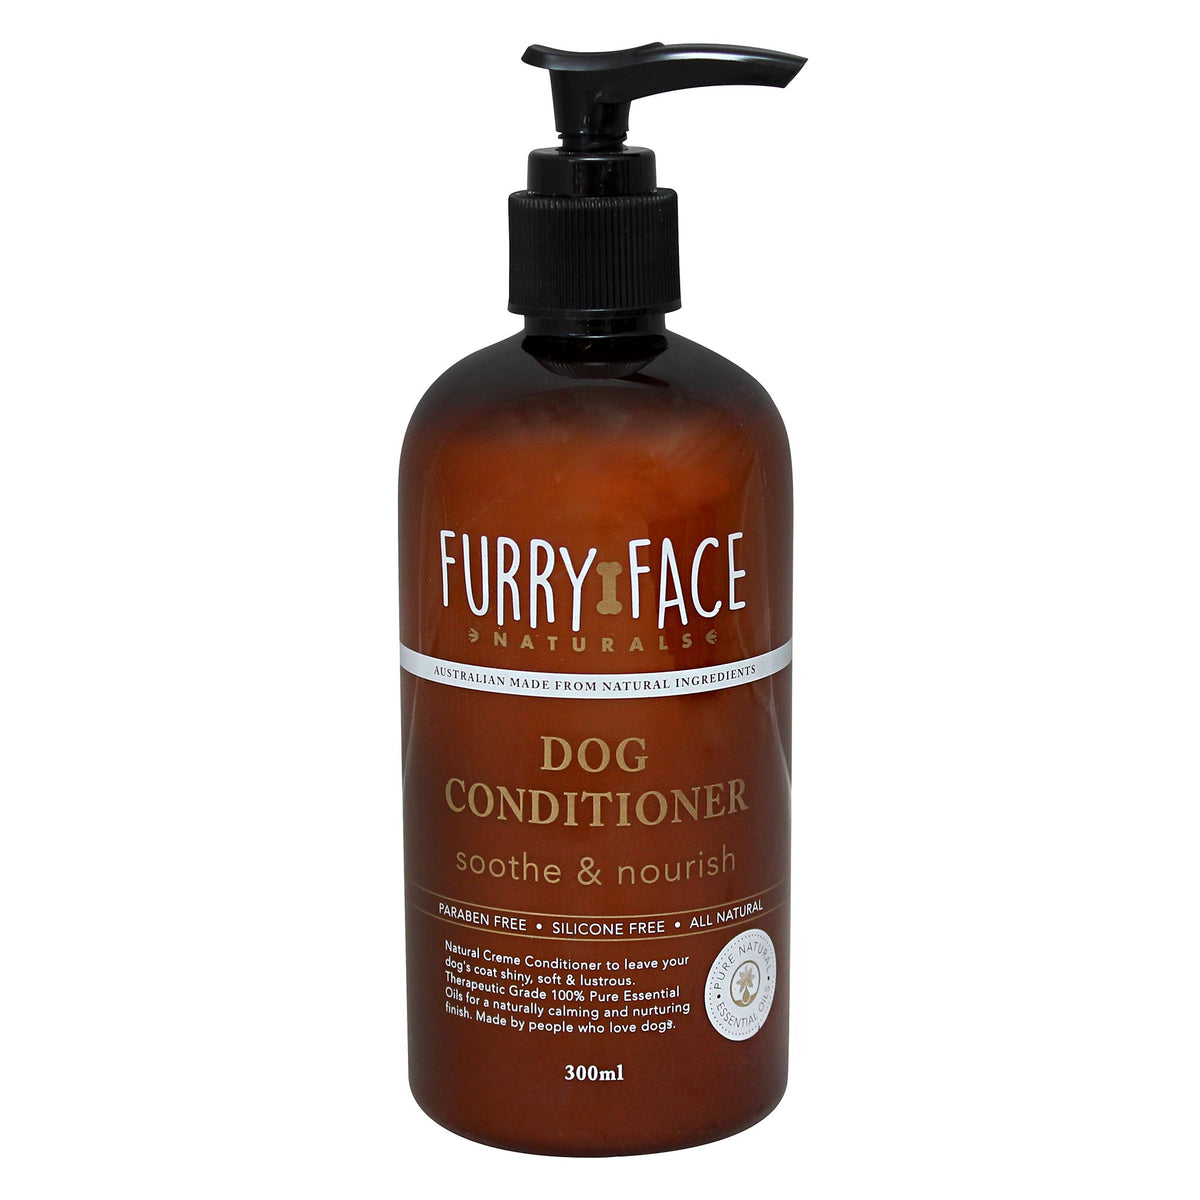 Furry Face Naturals Dog Conditioner - Soothe Nourish 300mL